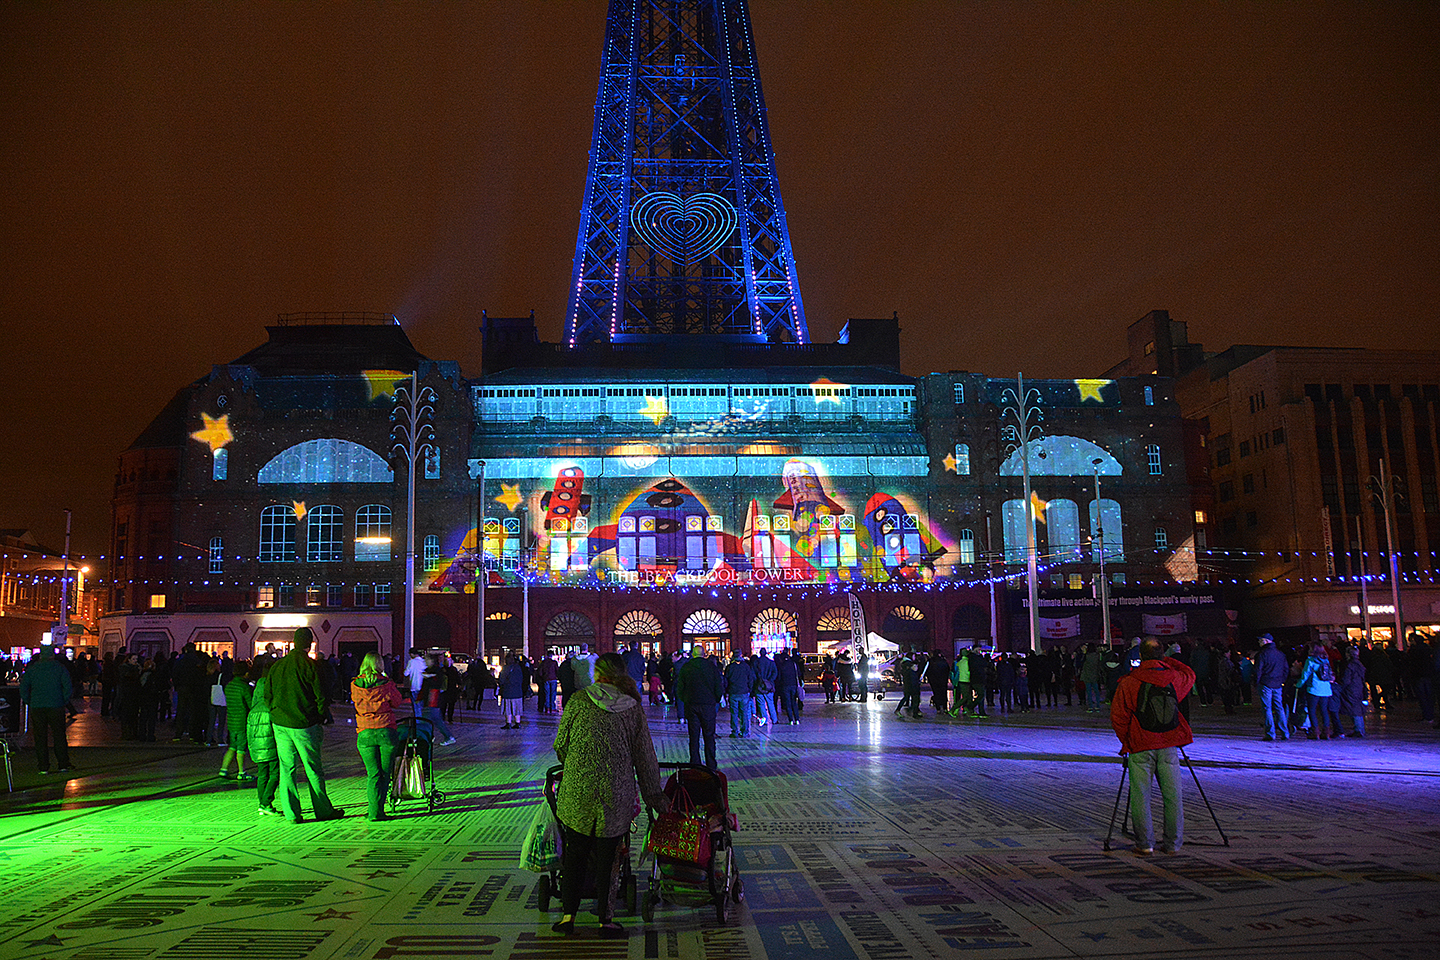 LightPool digital projection show on the front of Blackpool Tower during Illuminations